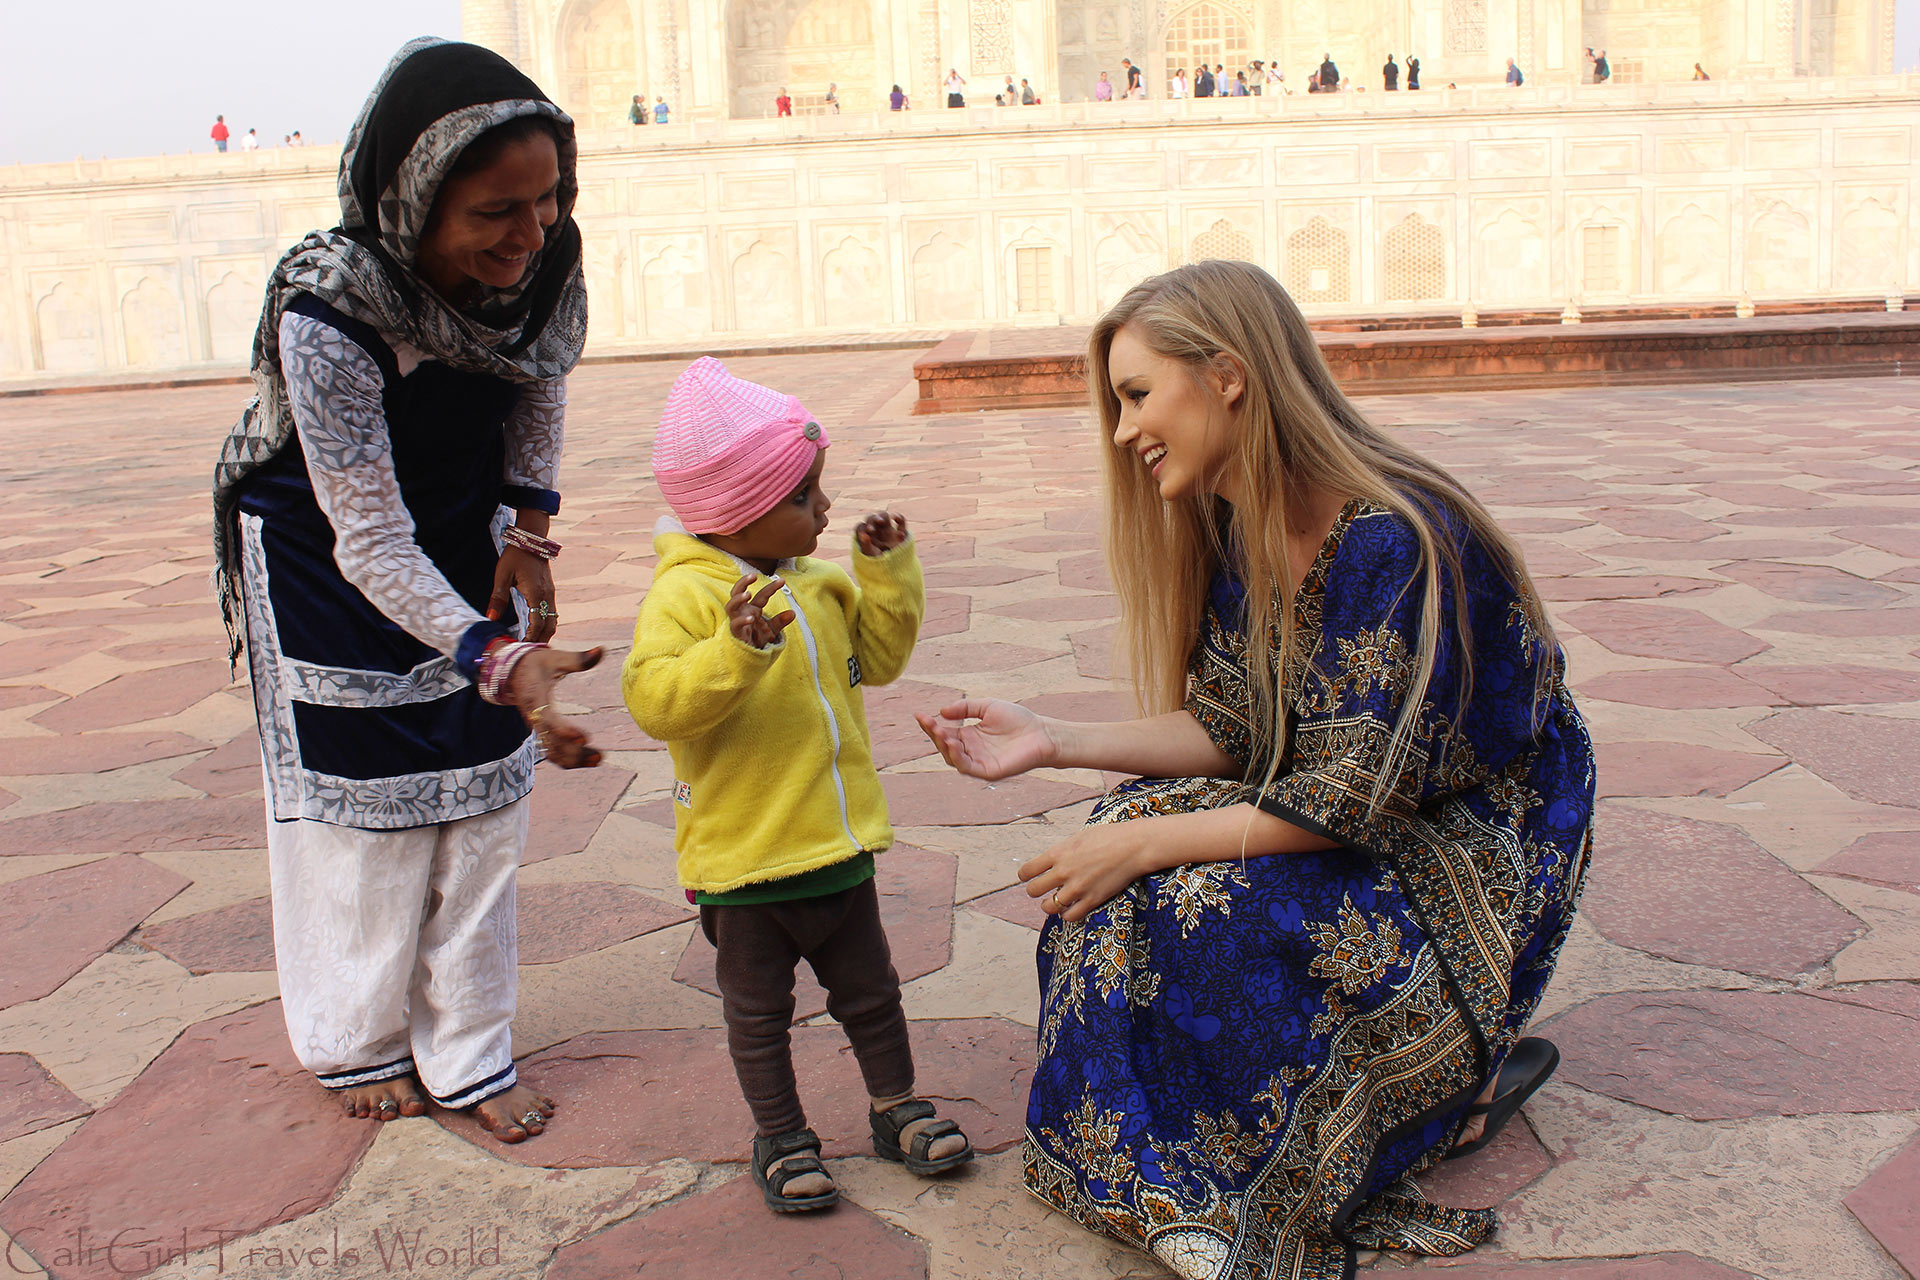 Welcoming locals coming to say hi at the Taj Mahal, India.